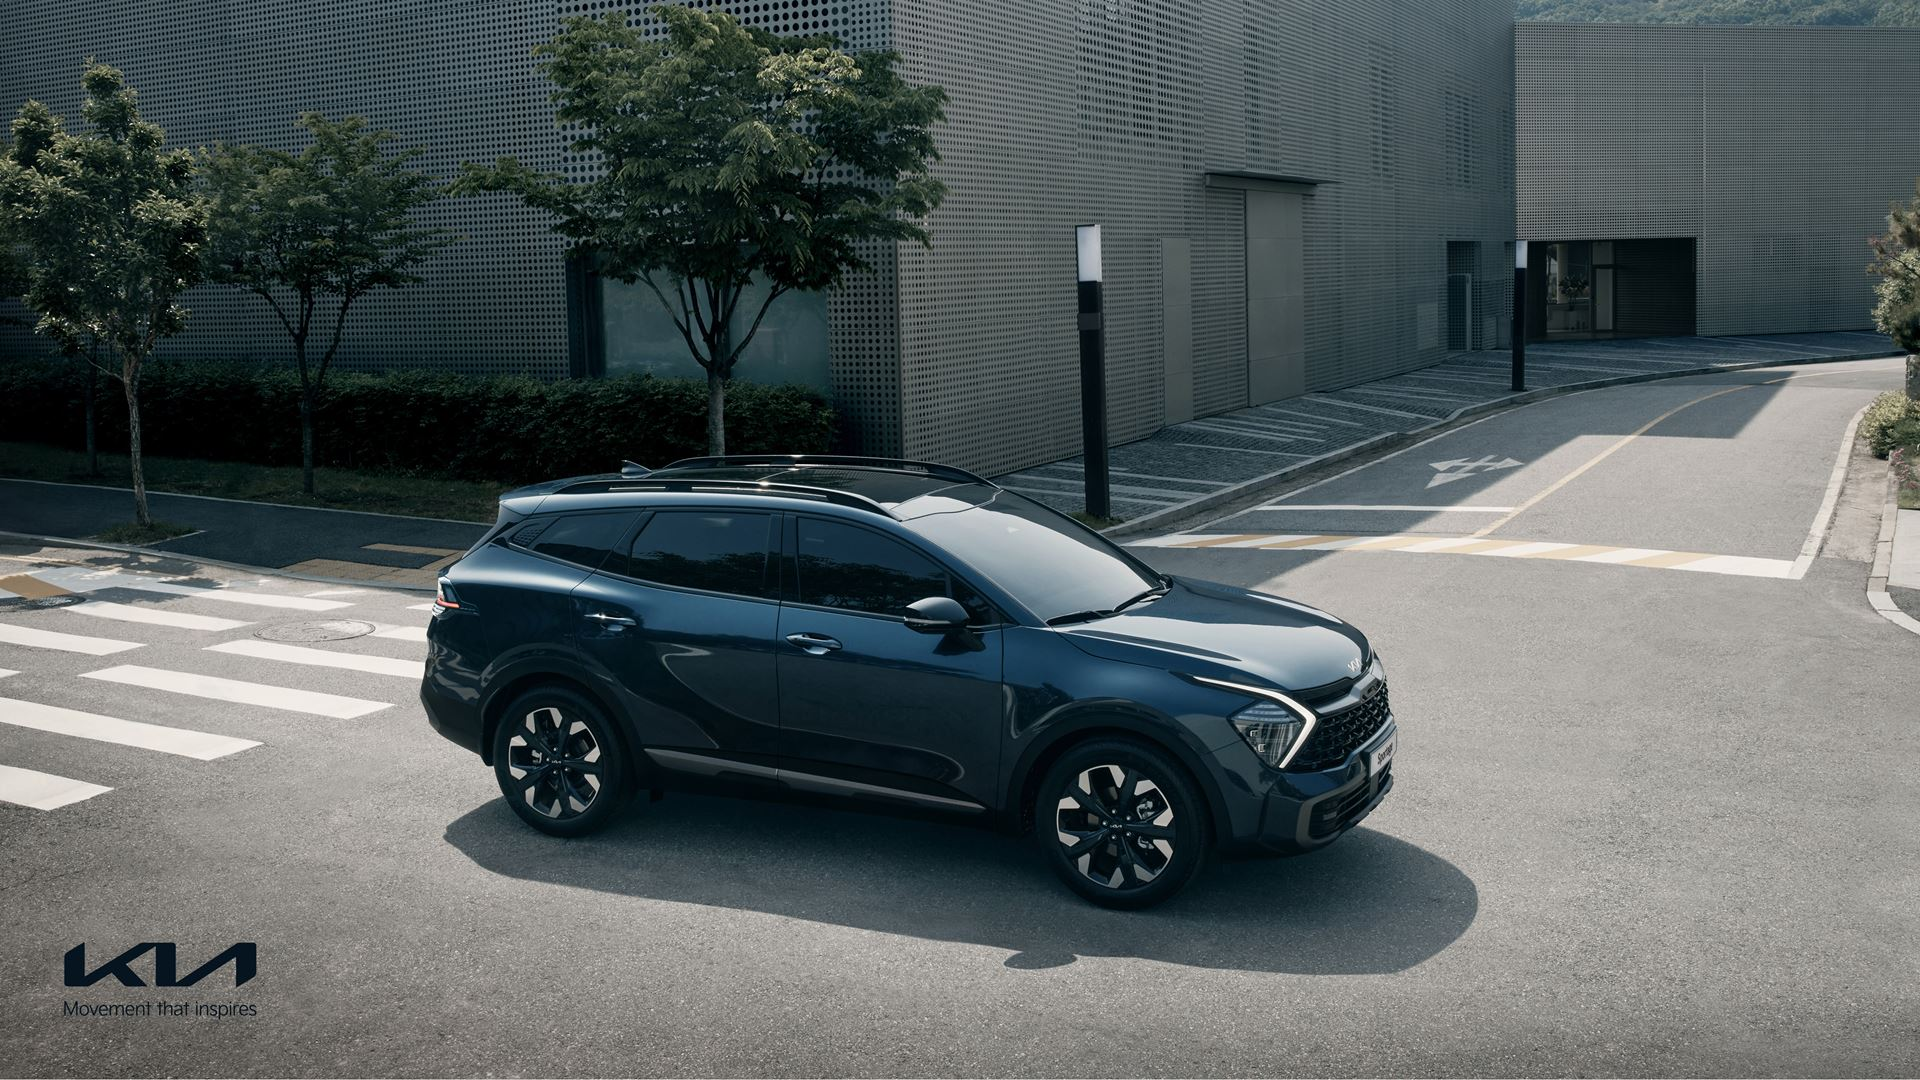 The all-new Kia Sportage sets new standards with inspiring SUV design - Image 3